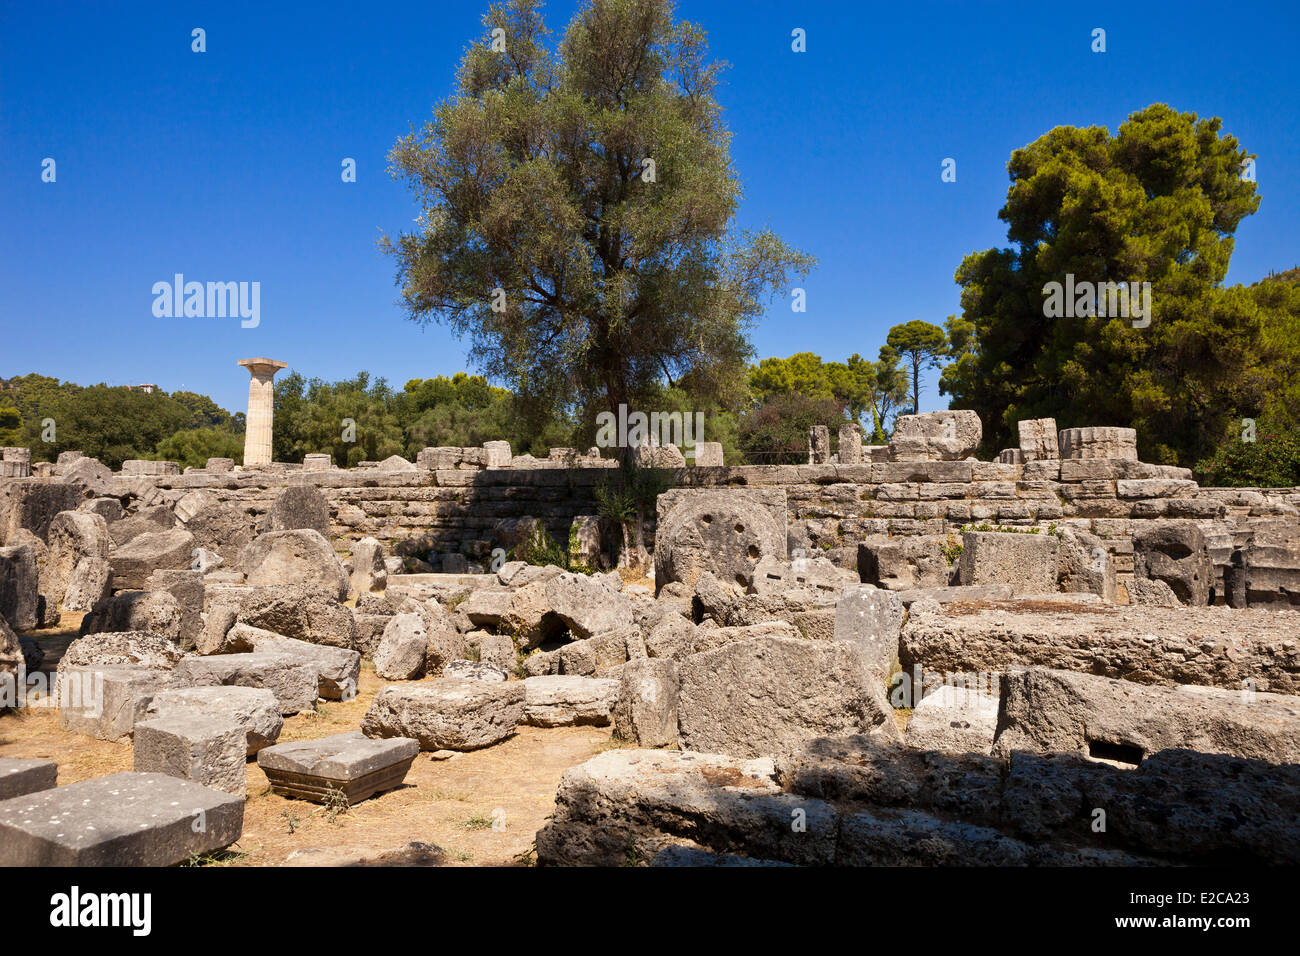 Greece, Peloponnese Region, the archaeological site of Olympia, listed as World Heritage by UNESCO - Stock Image